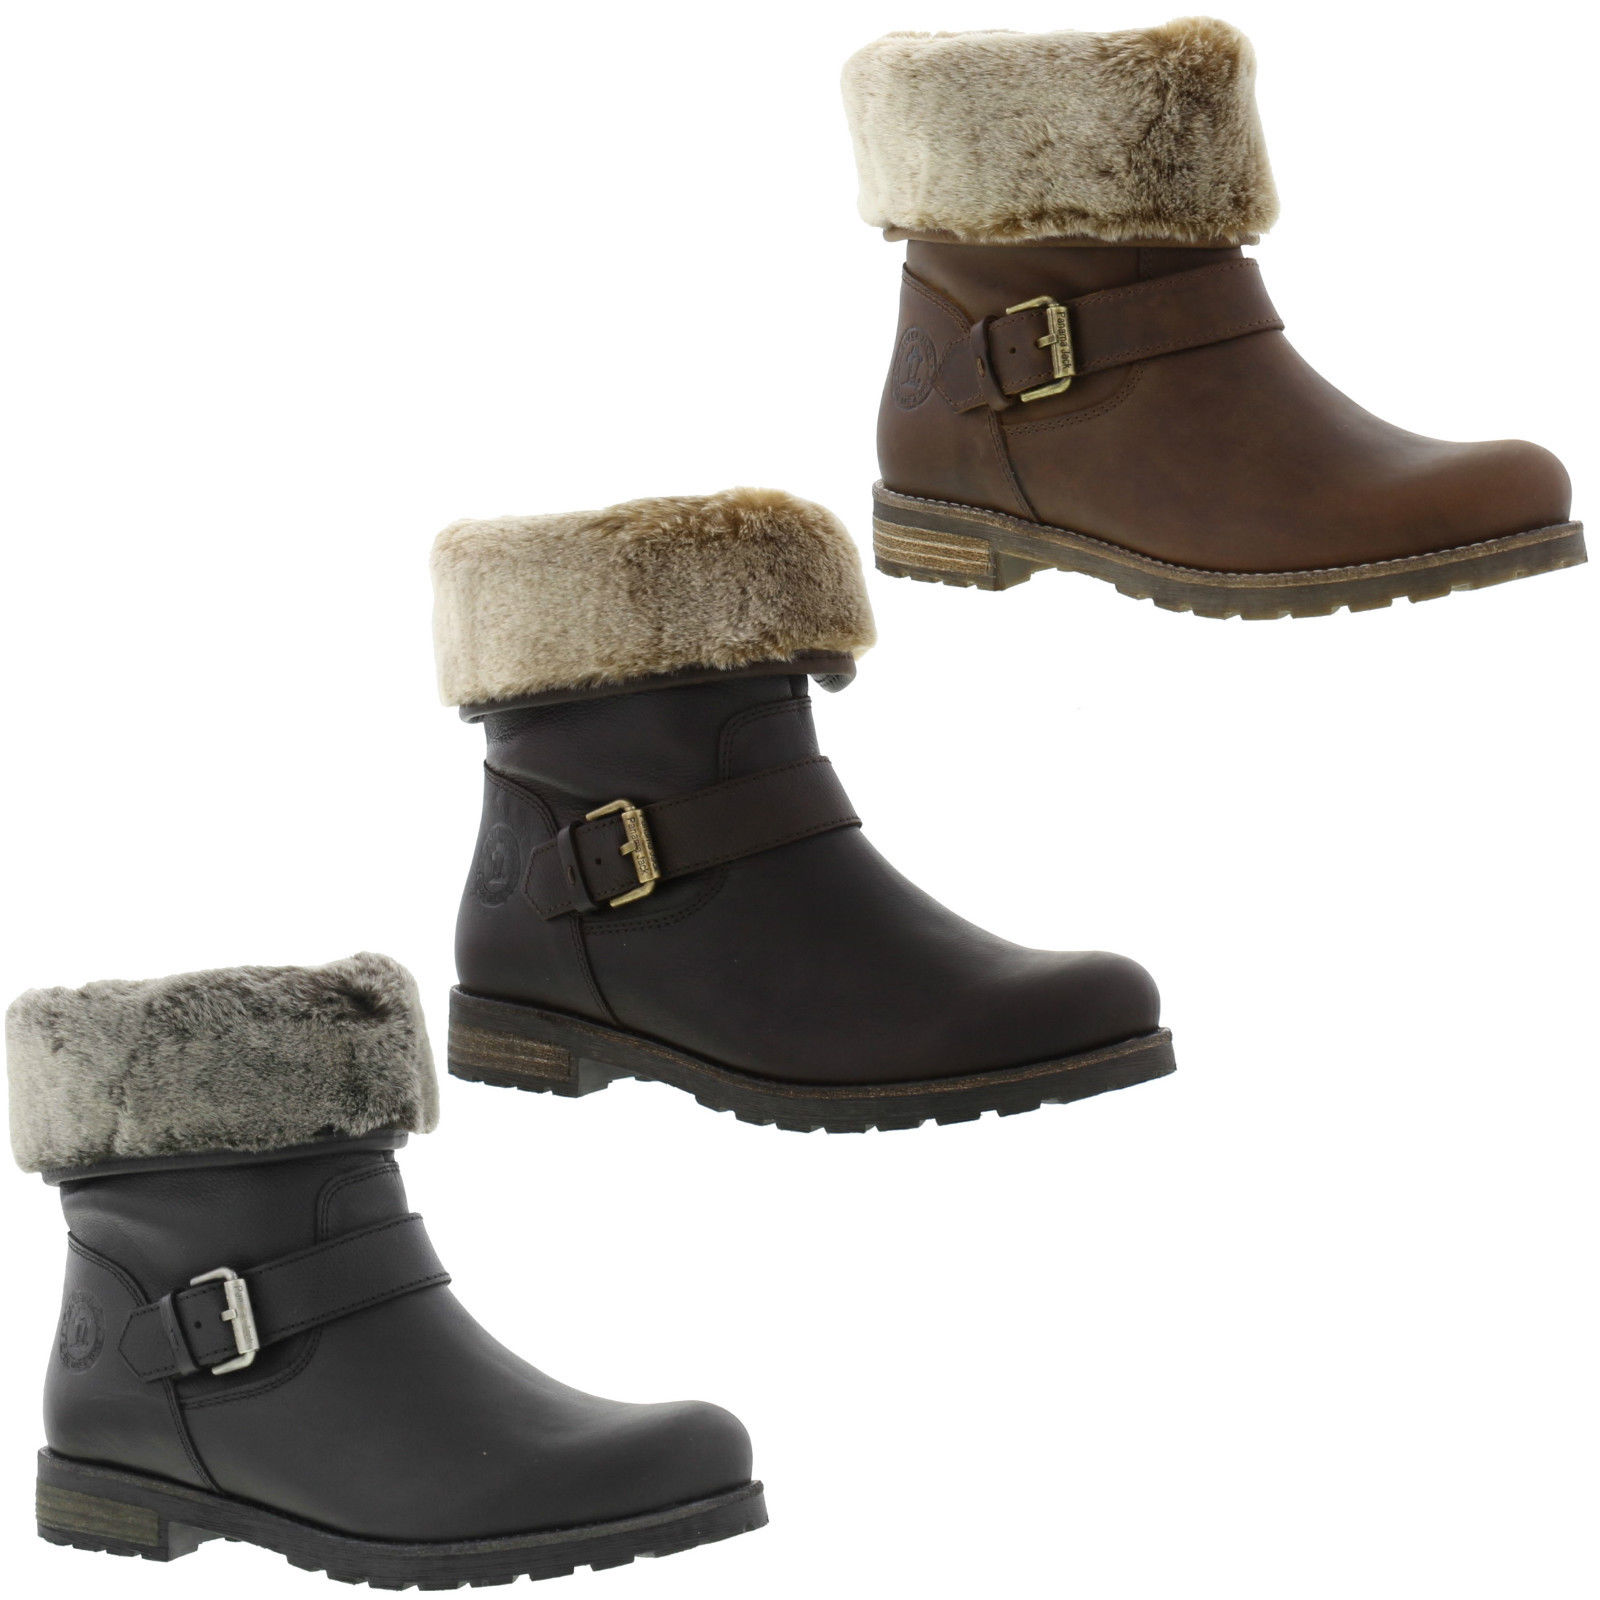 panama jack singapur womens fur lined waterproof leather boots size 4 8 ebay. Black Bedroom Furniture Sets. Home Design Ideas